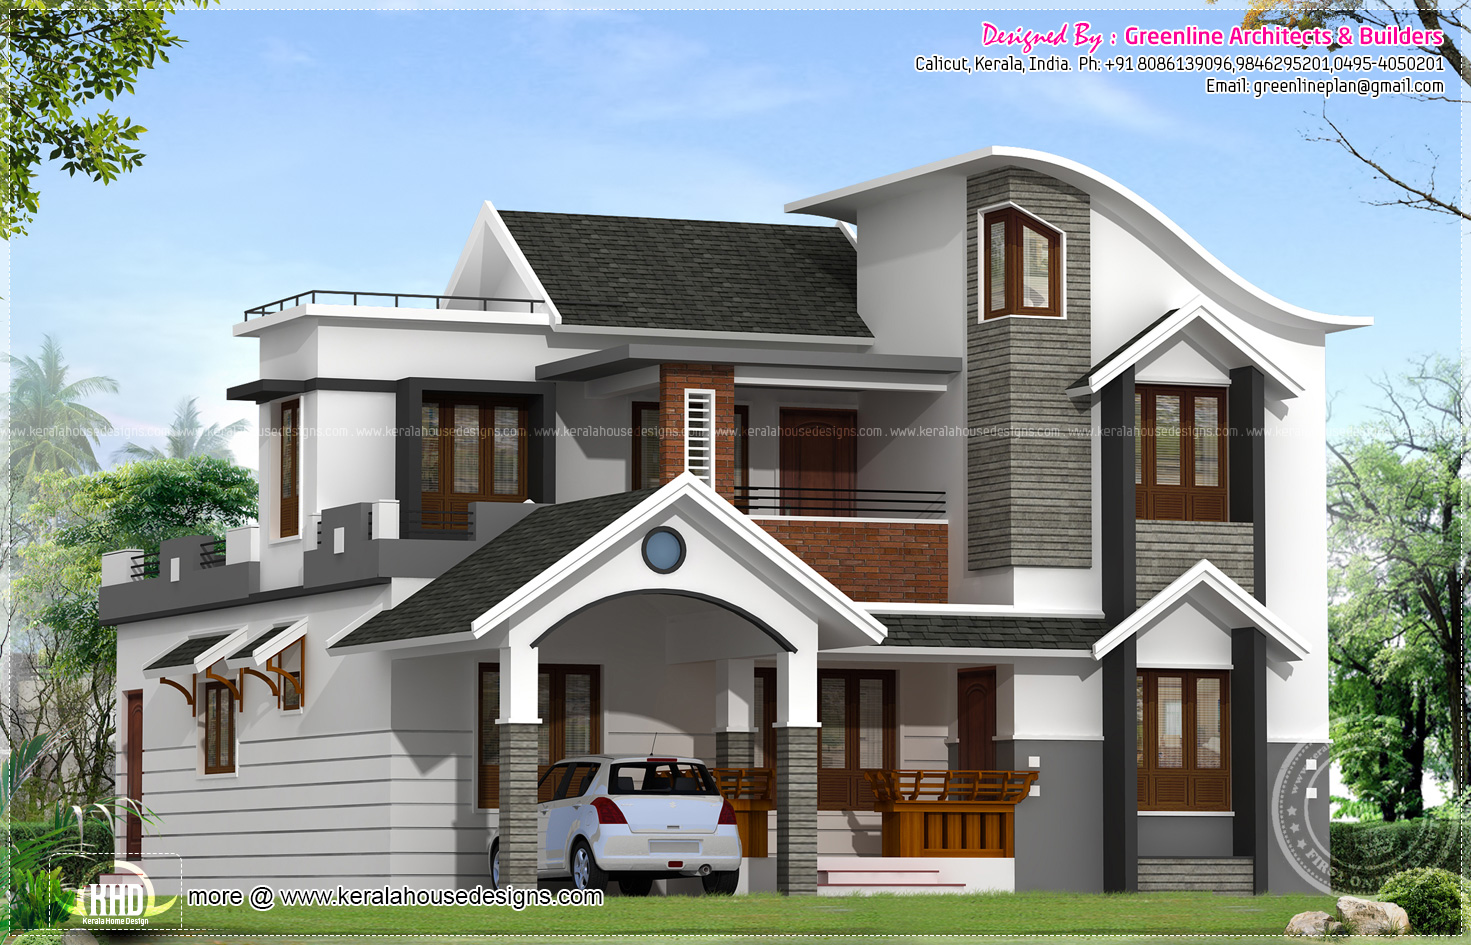 May 2013 kerala home design and floor plans - Kerala exterior model homes ...